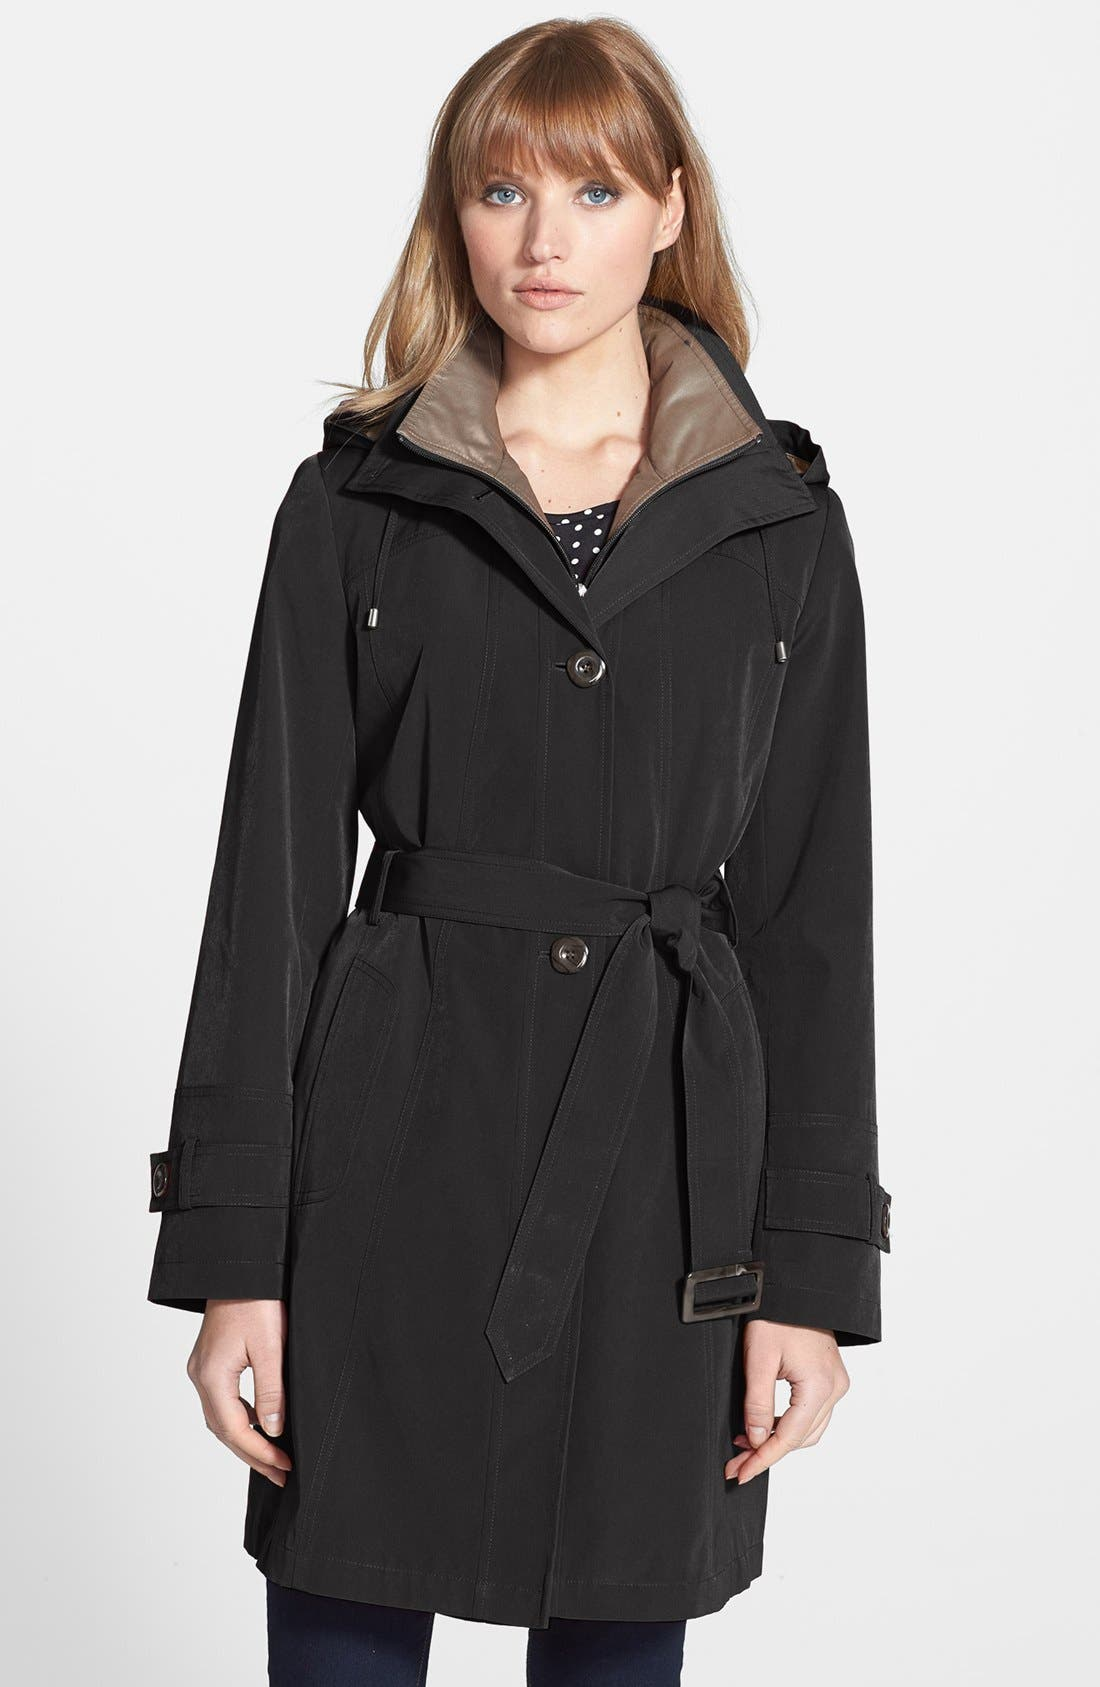 Alternate Image 1 Selected - Gallery Two-Tone Belted Walking Coat with Detachable Hood (Regular & Petite) (Online Only)